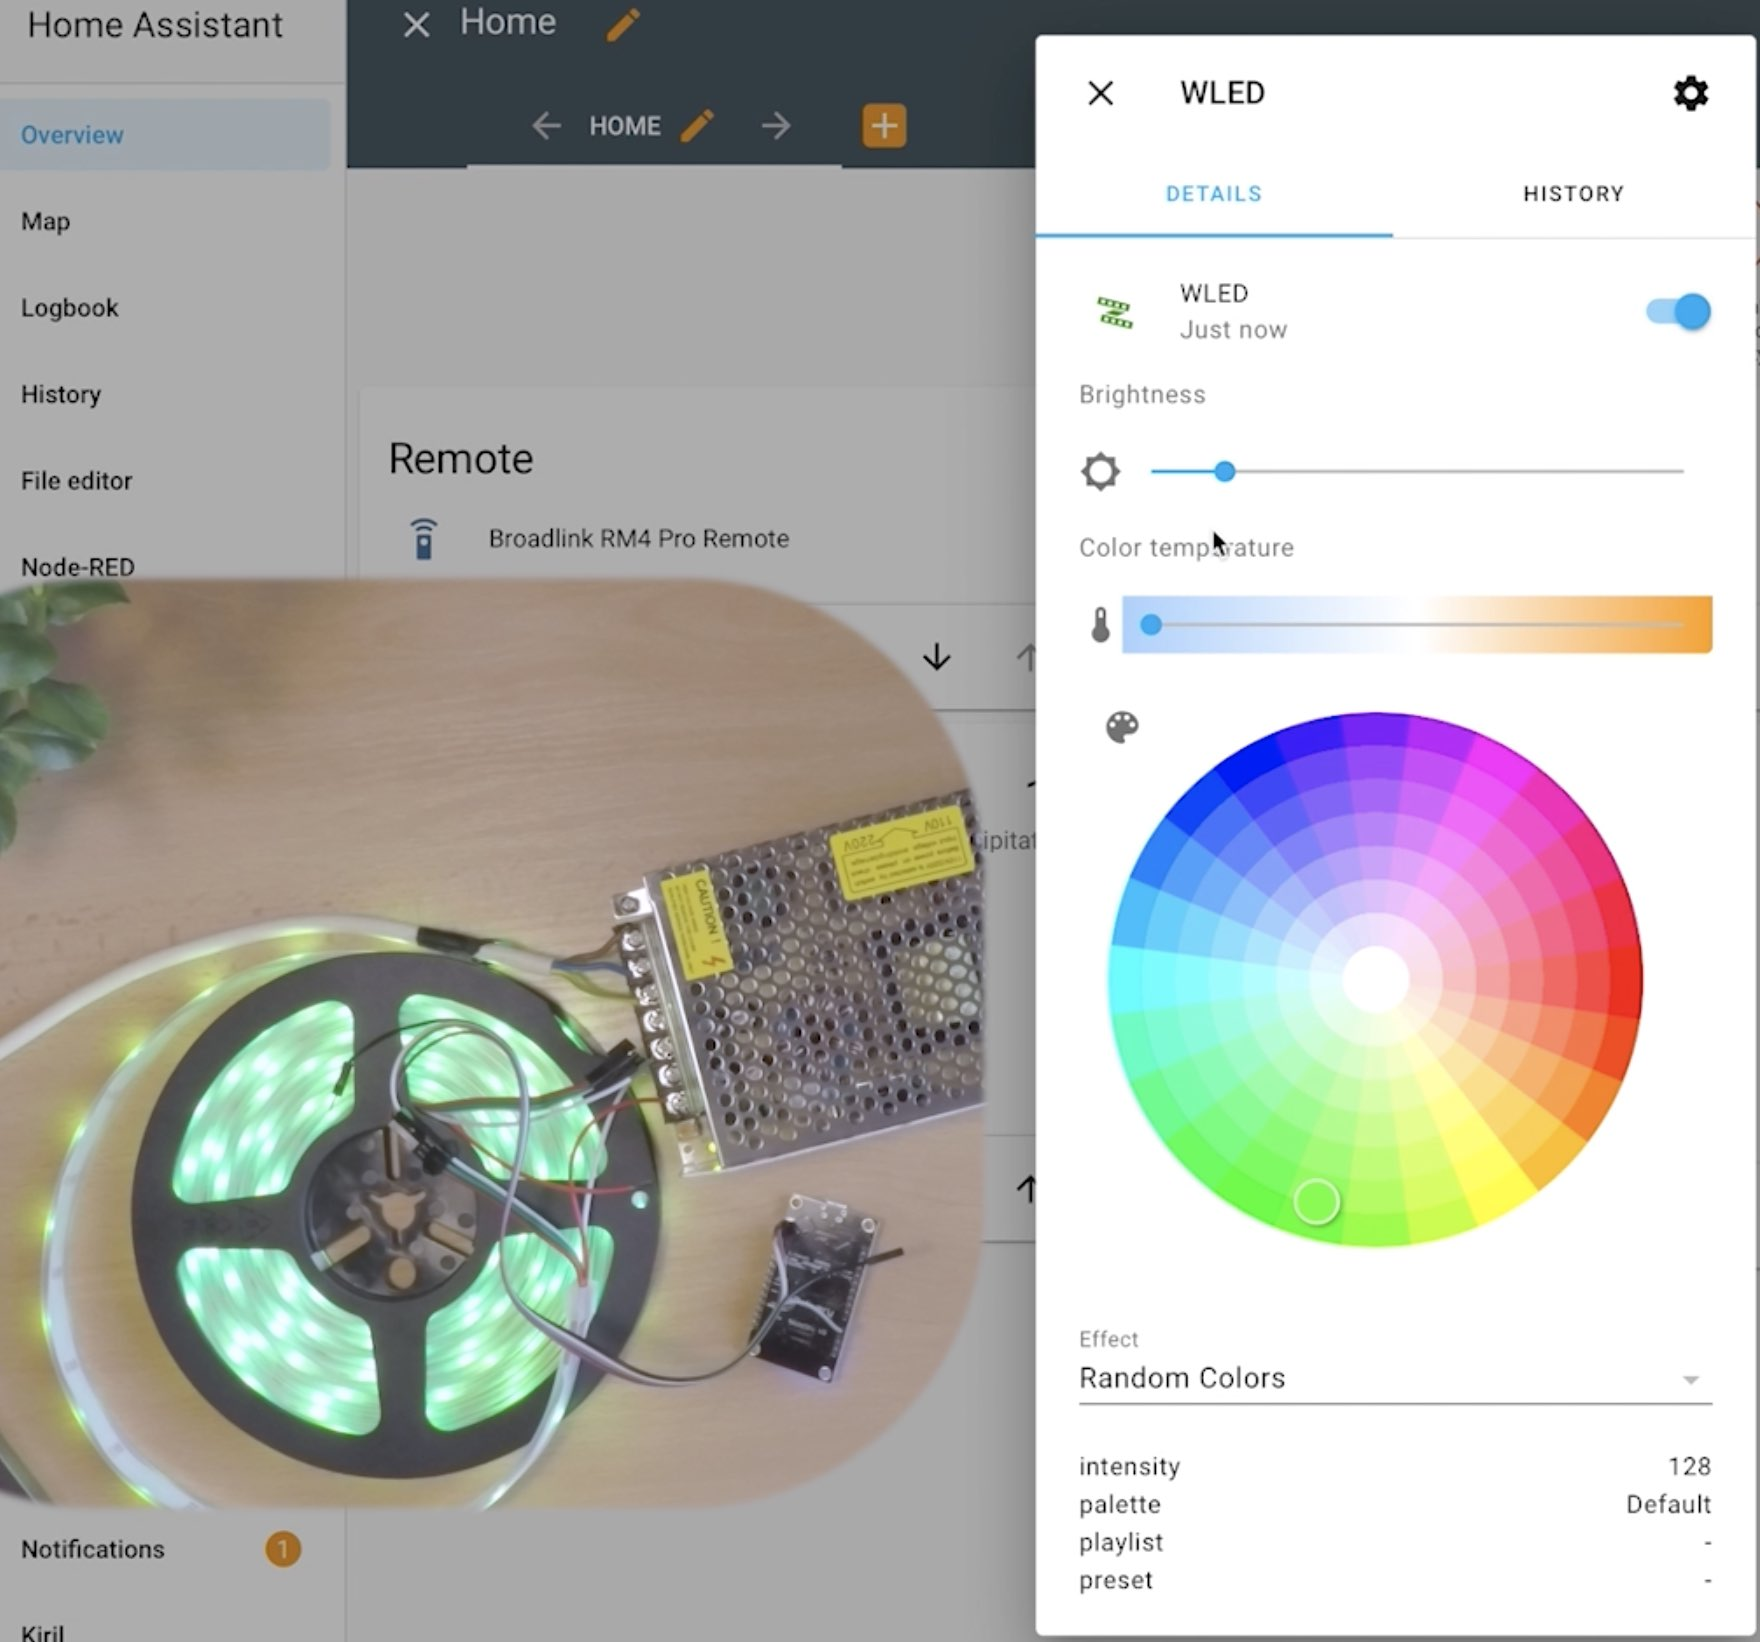 Changing the LED Strip colors using Home Assistant and WLED